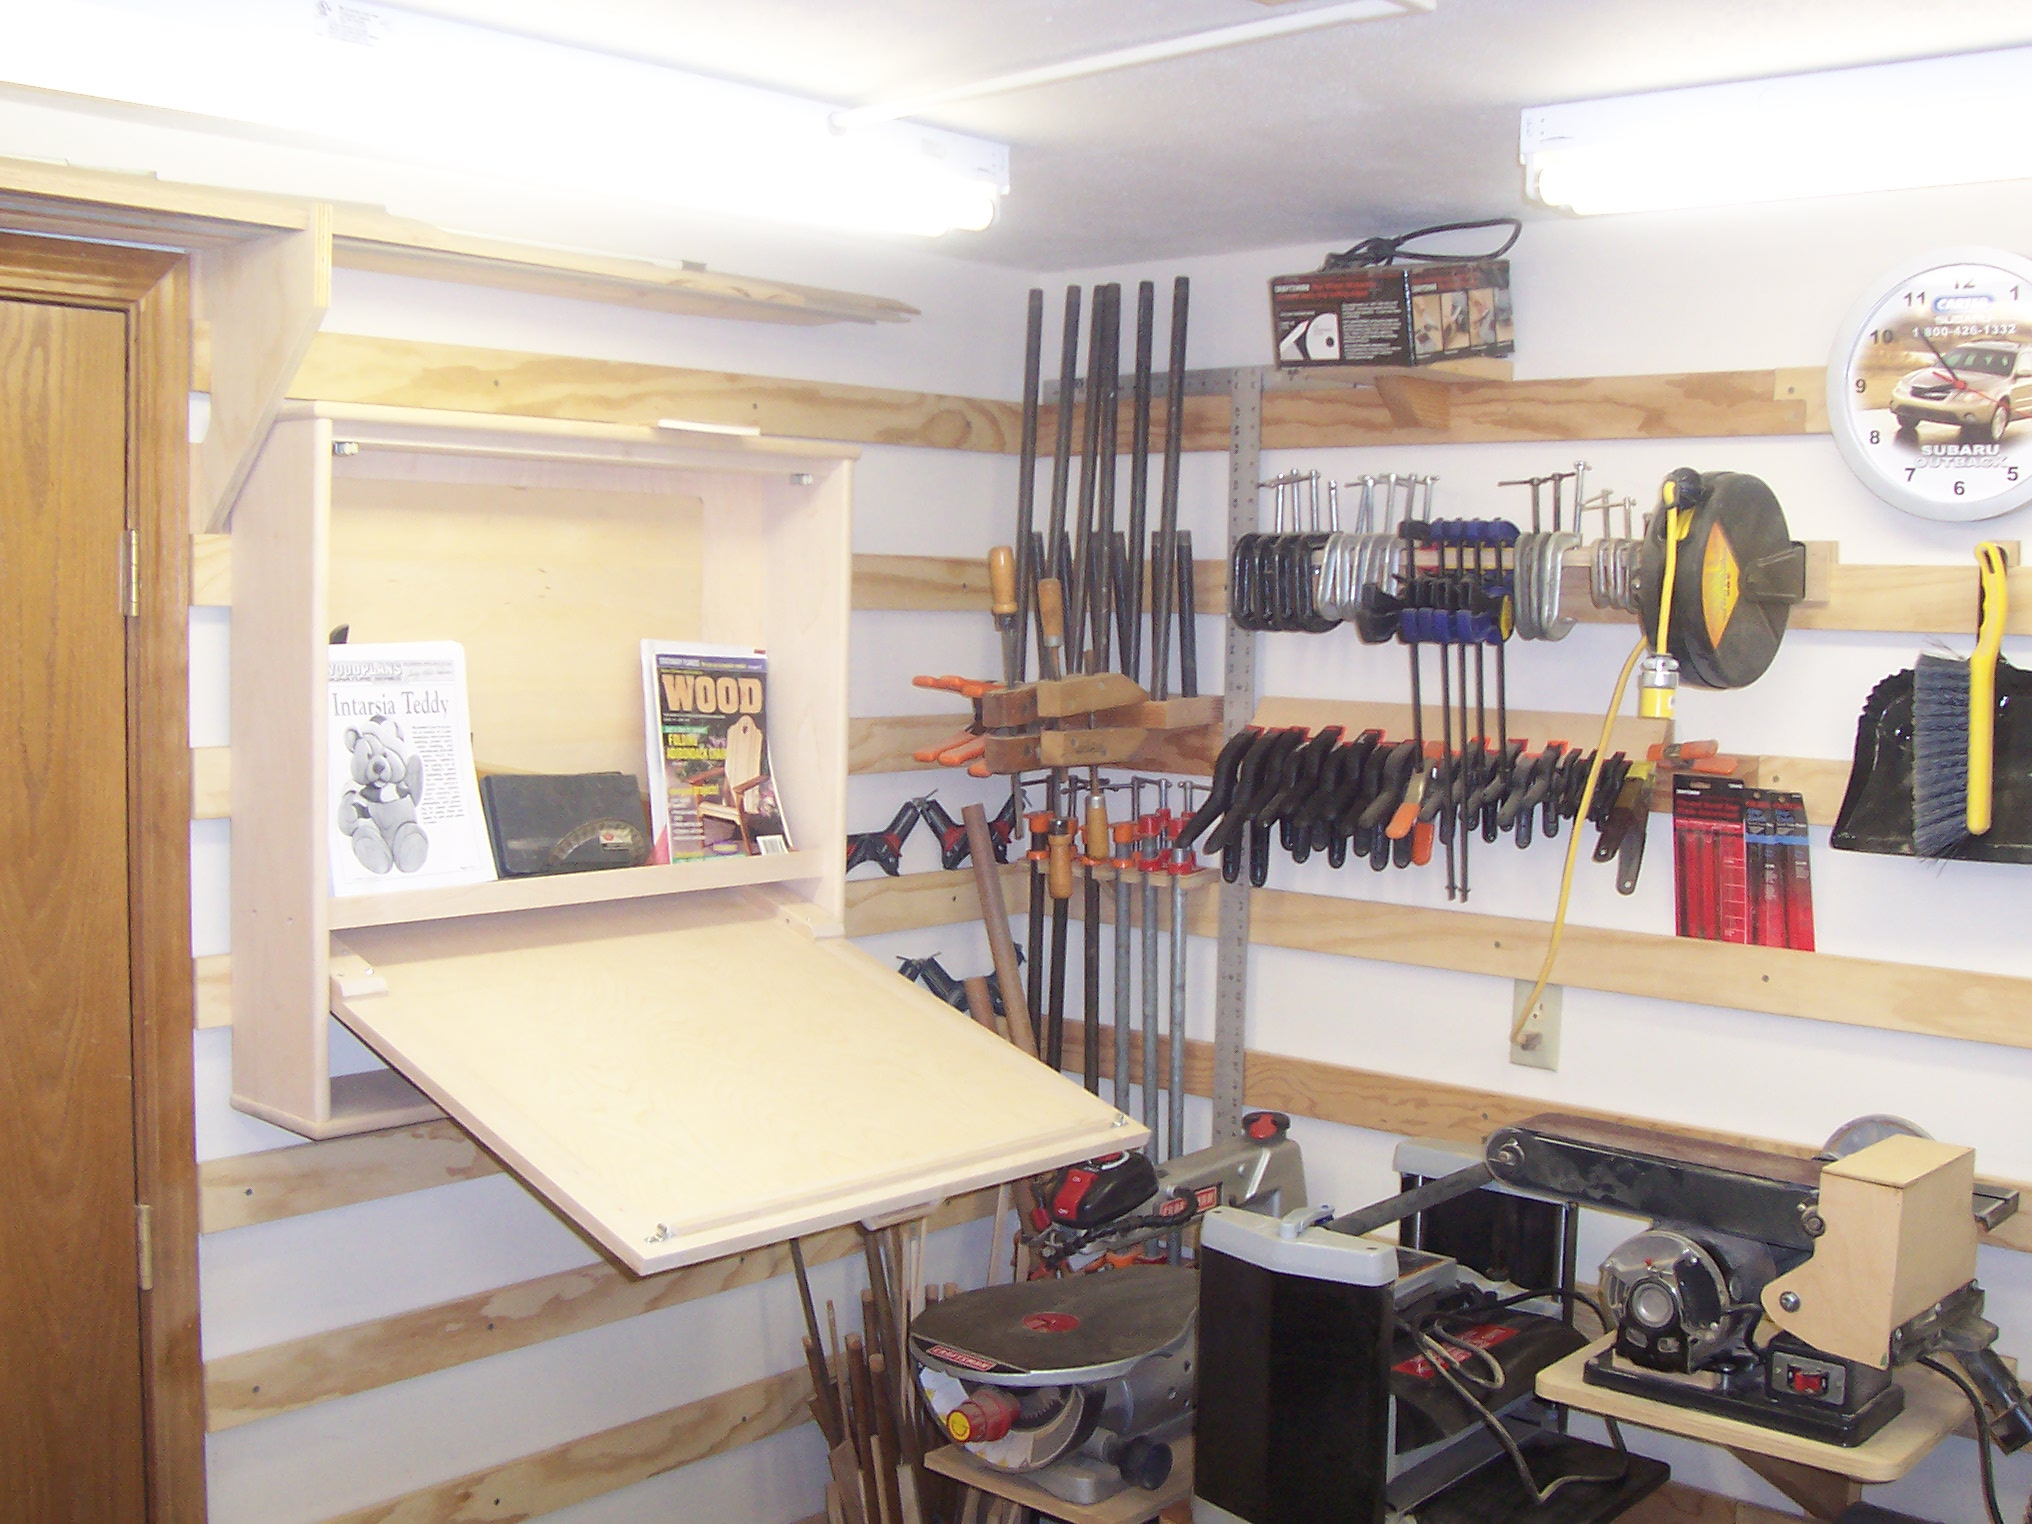 My 10 X 14 basement workshop